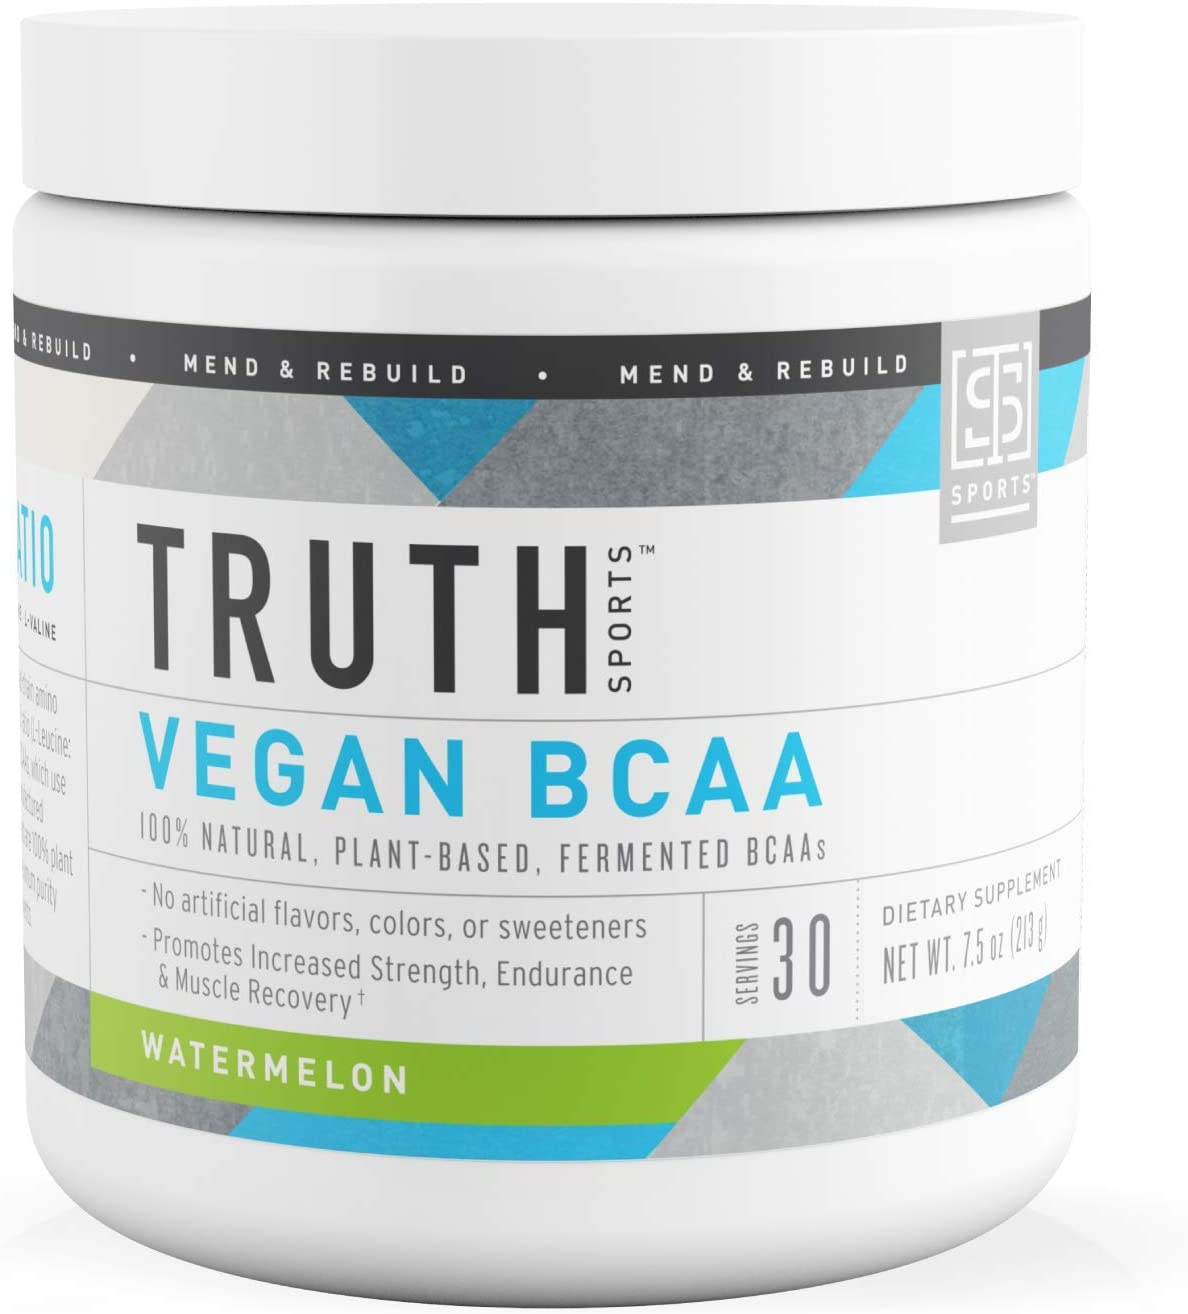 Truth Nutrition Fermented Vegan BCAA Powder – 2 1 1 Pure, Powerful All Natural Branched Chain Amino Acids Watermelon, 30 Servings